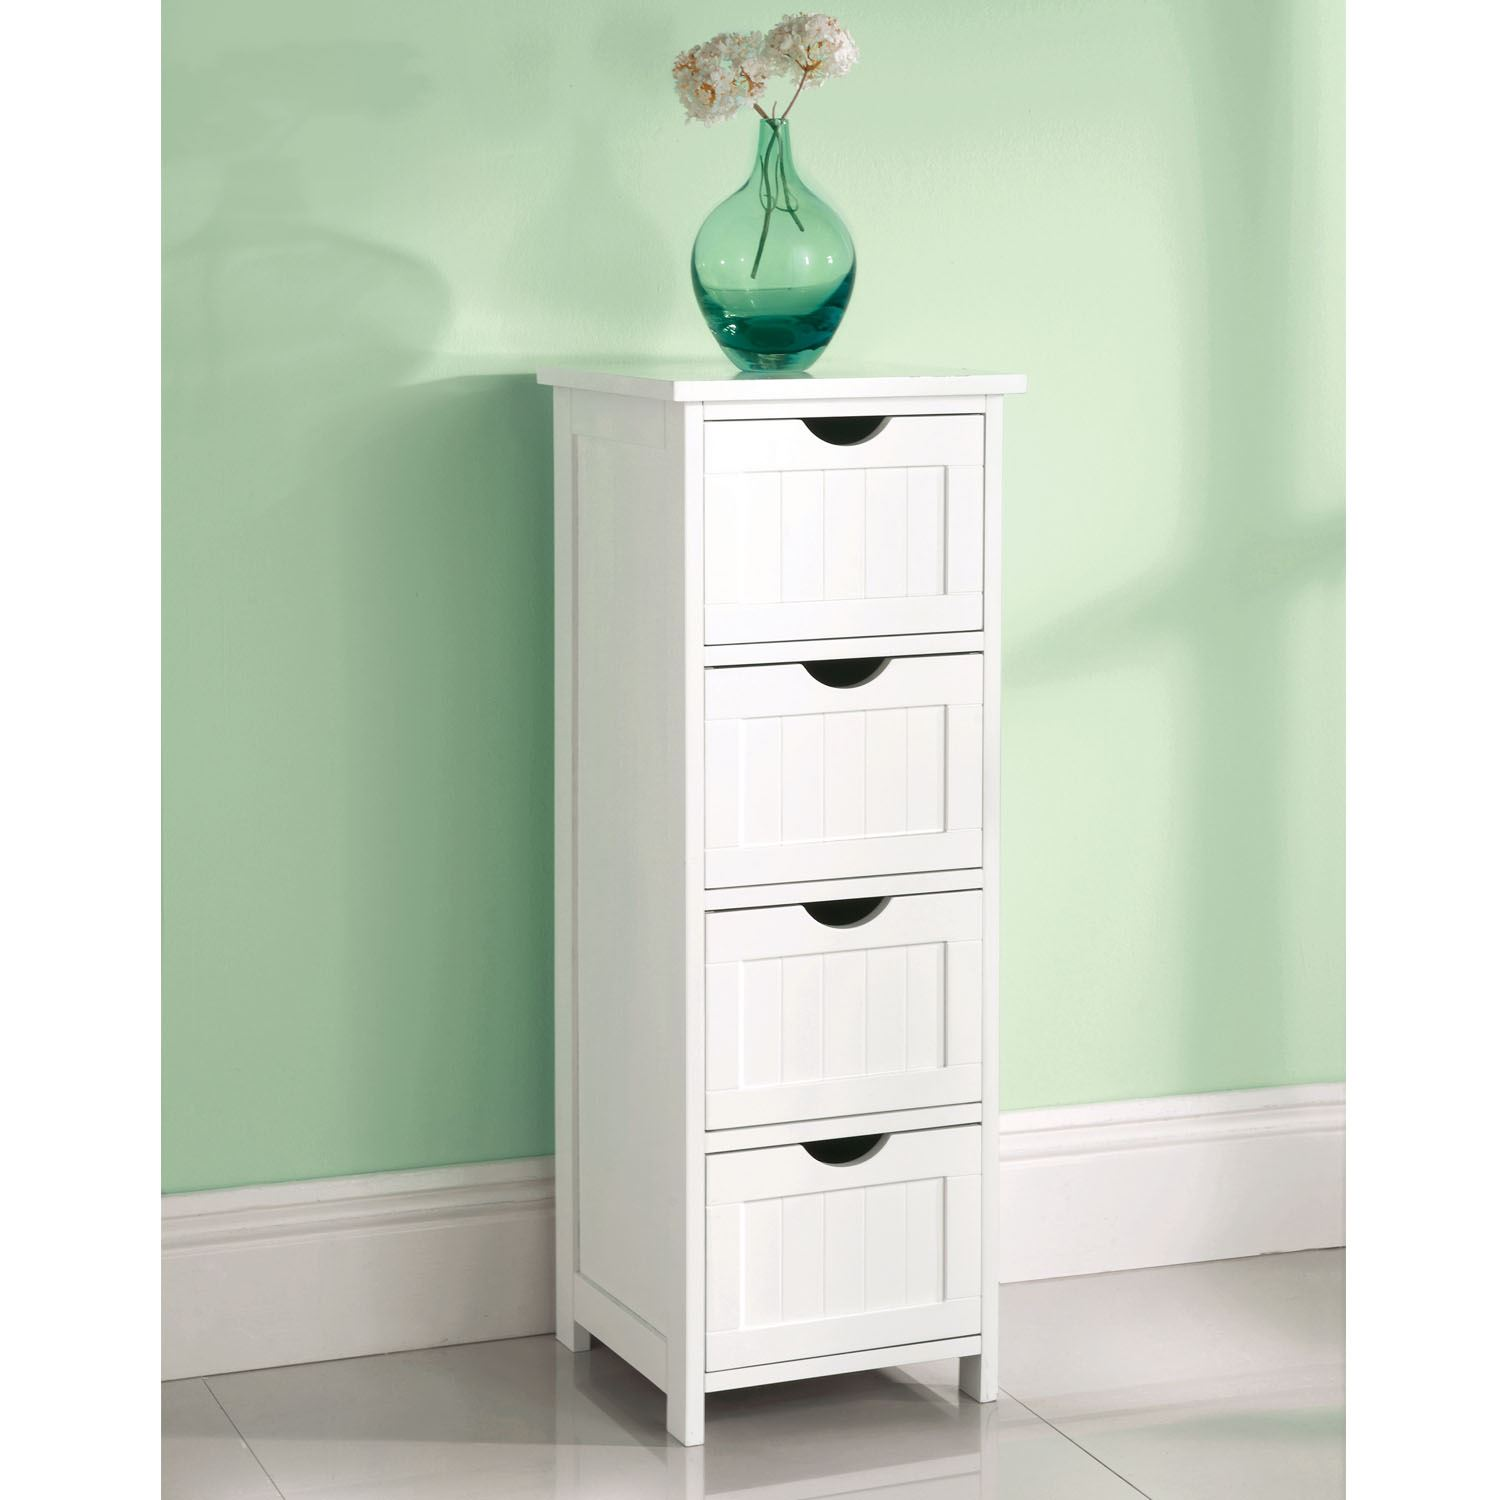 White wooden 1 drawer bathroom bedroom cabinet shelving - Bedroom storage cabinets with drawers ...